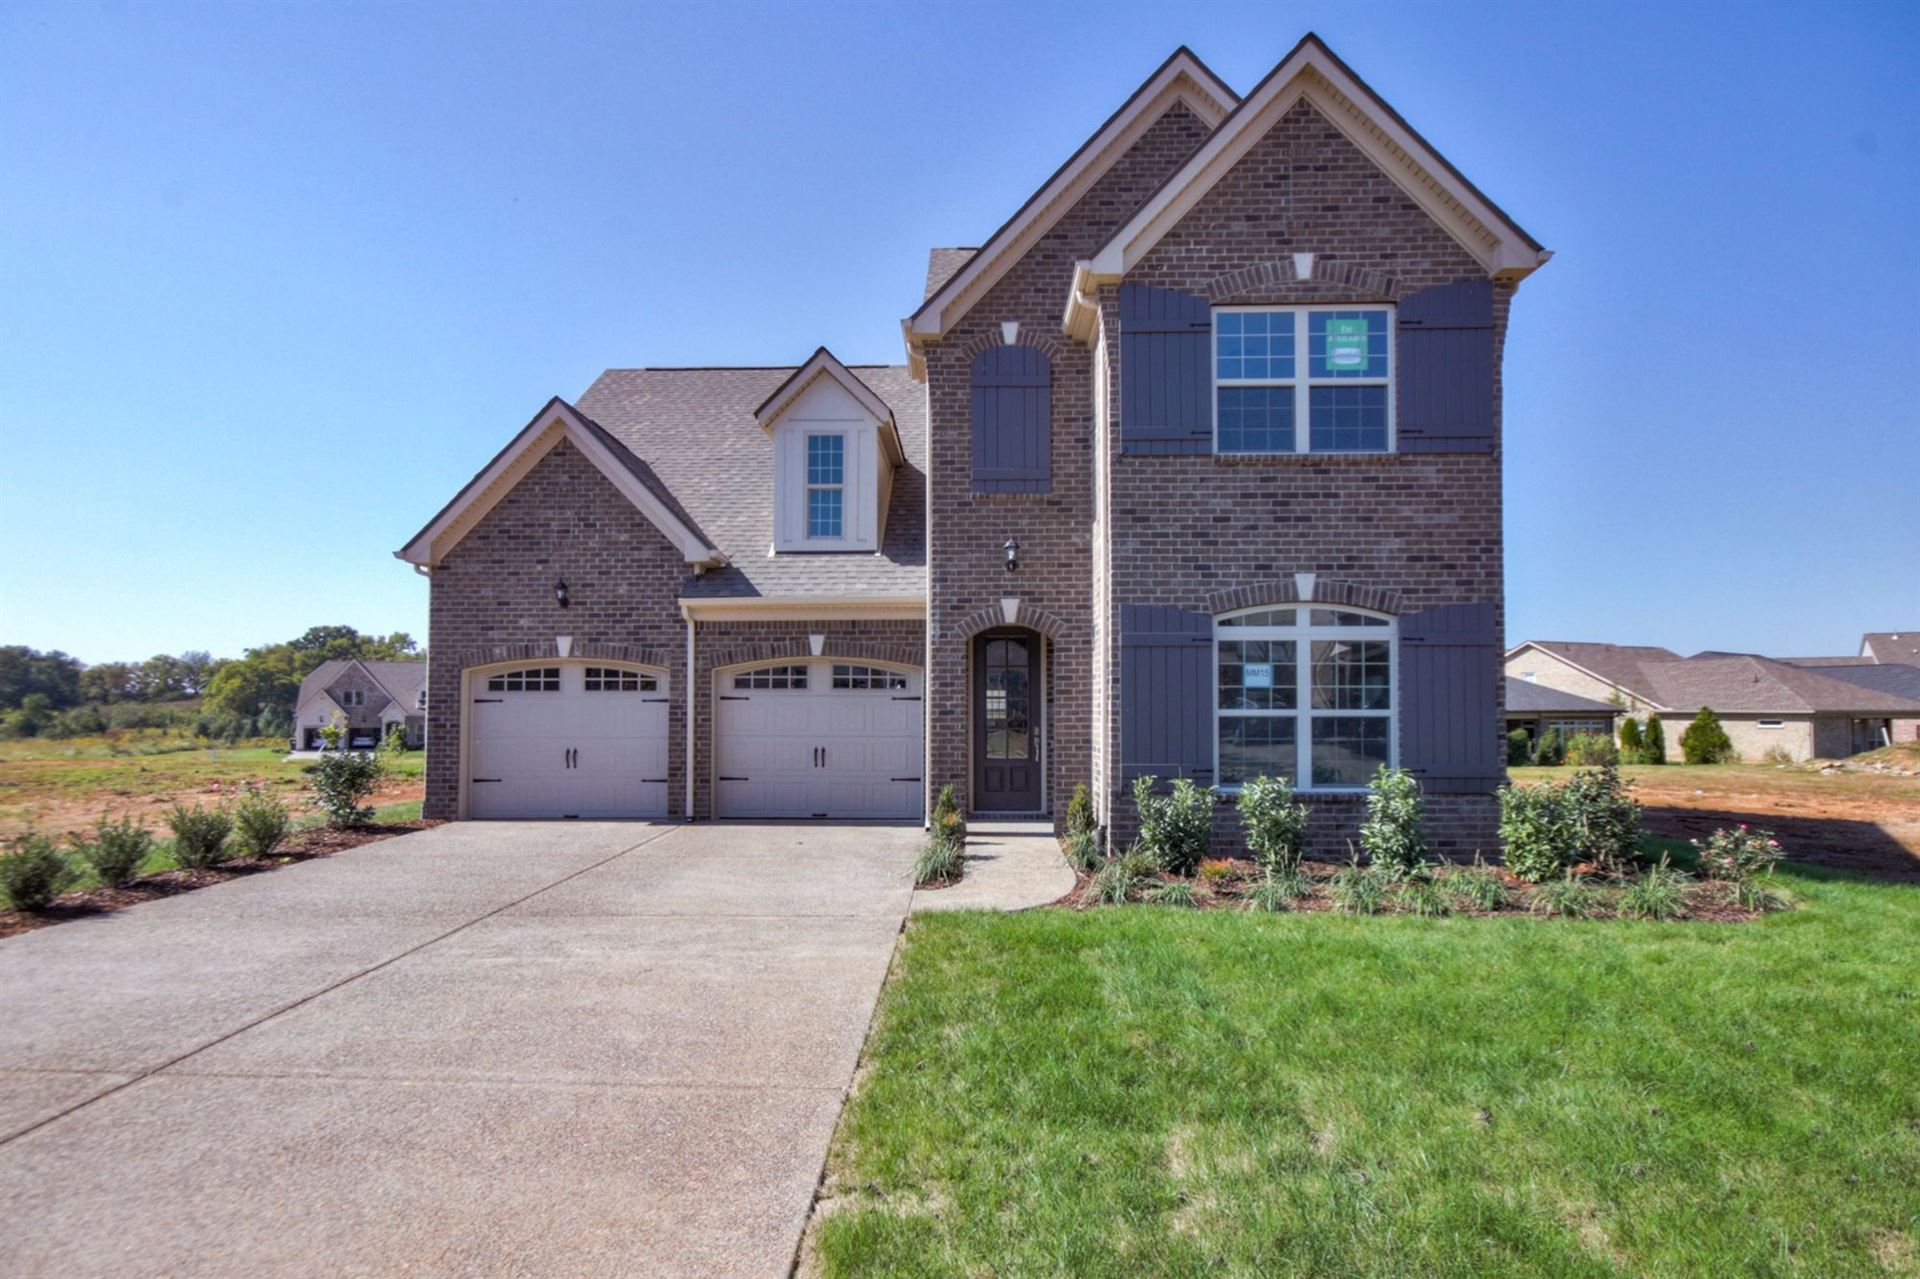 4638 Maryweather Ln, Murfreesboro, TN 37128 - MLS#: 2163874